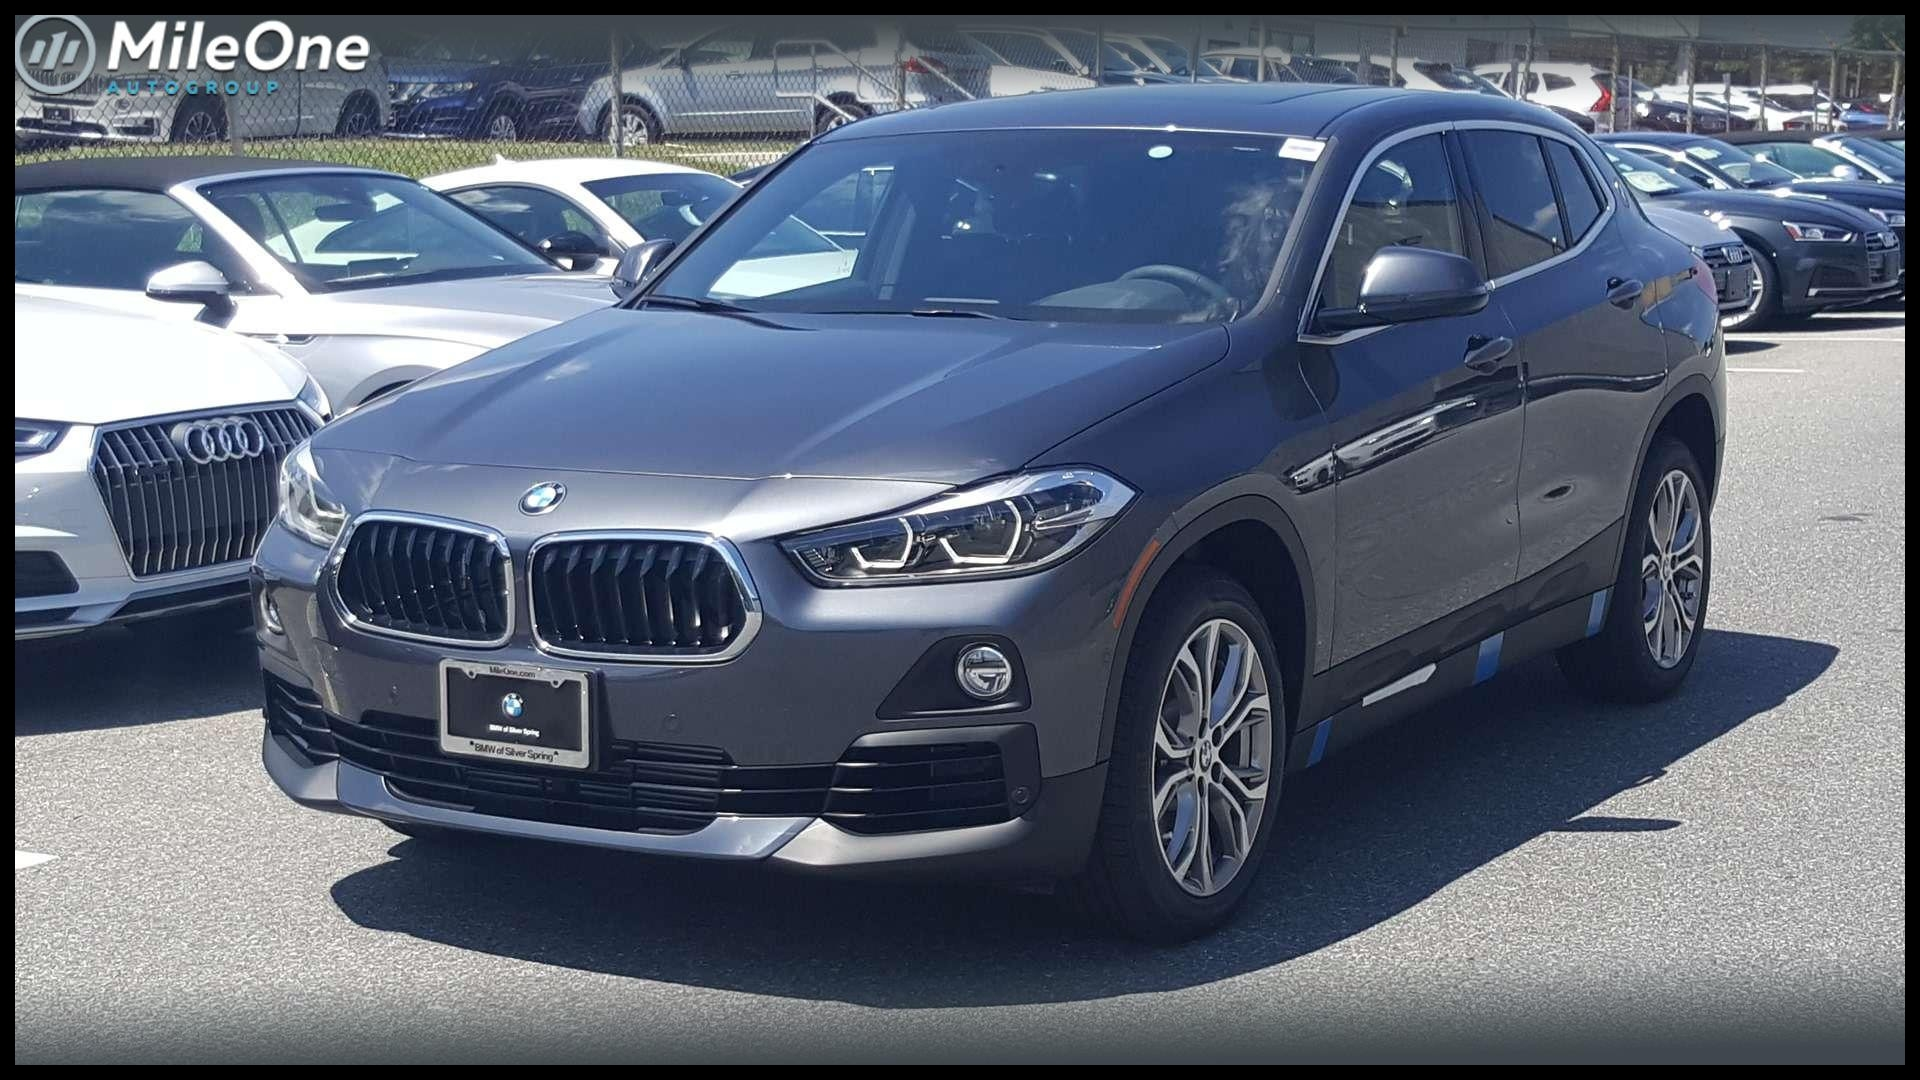 Garage Door Repair Silver Spring Md Unique Used 2018 Bmw X2 Sdrive28i for Sale In Silver